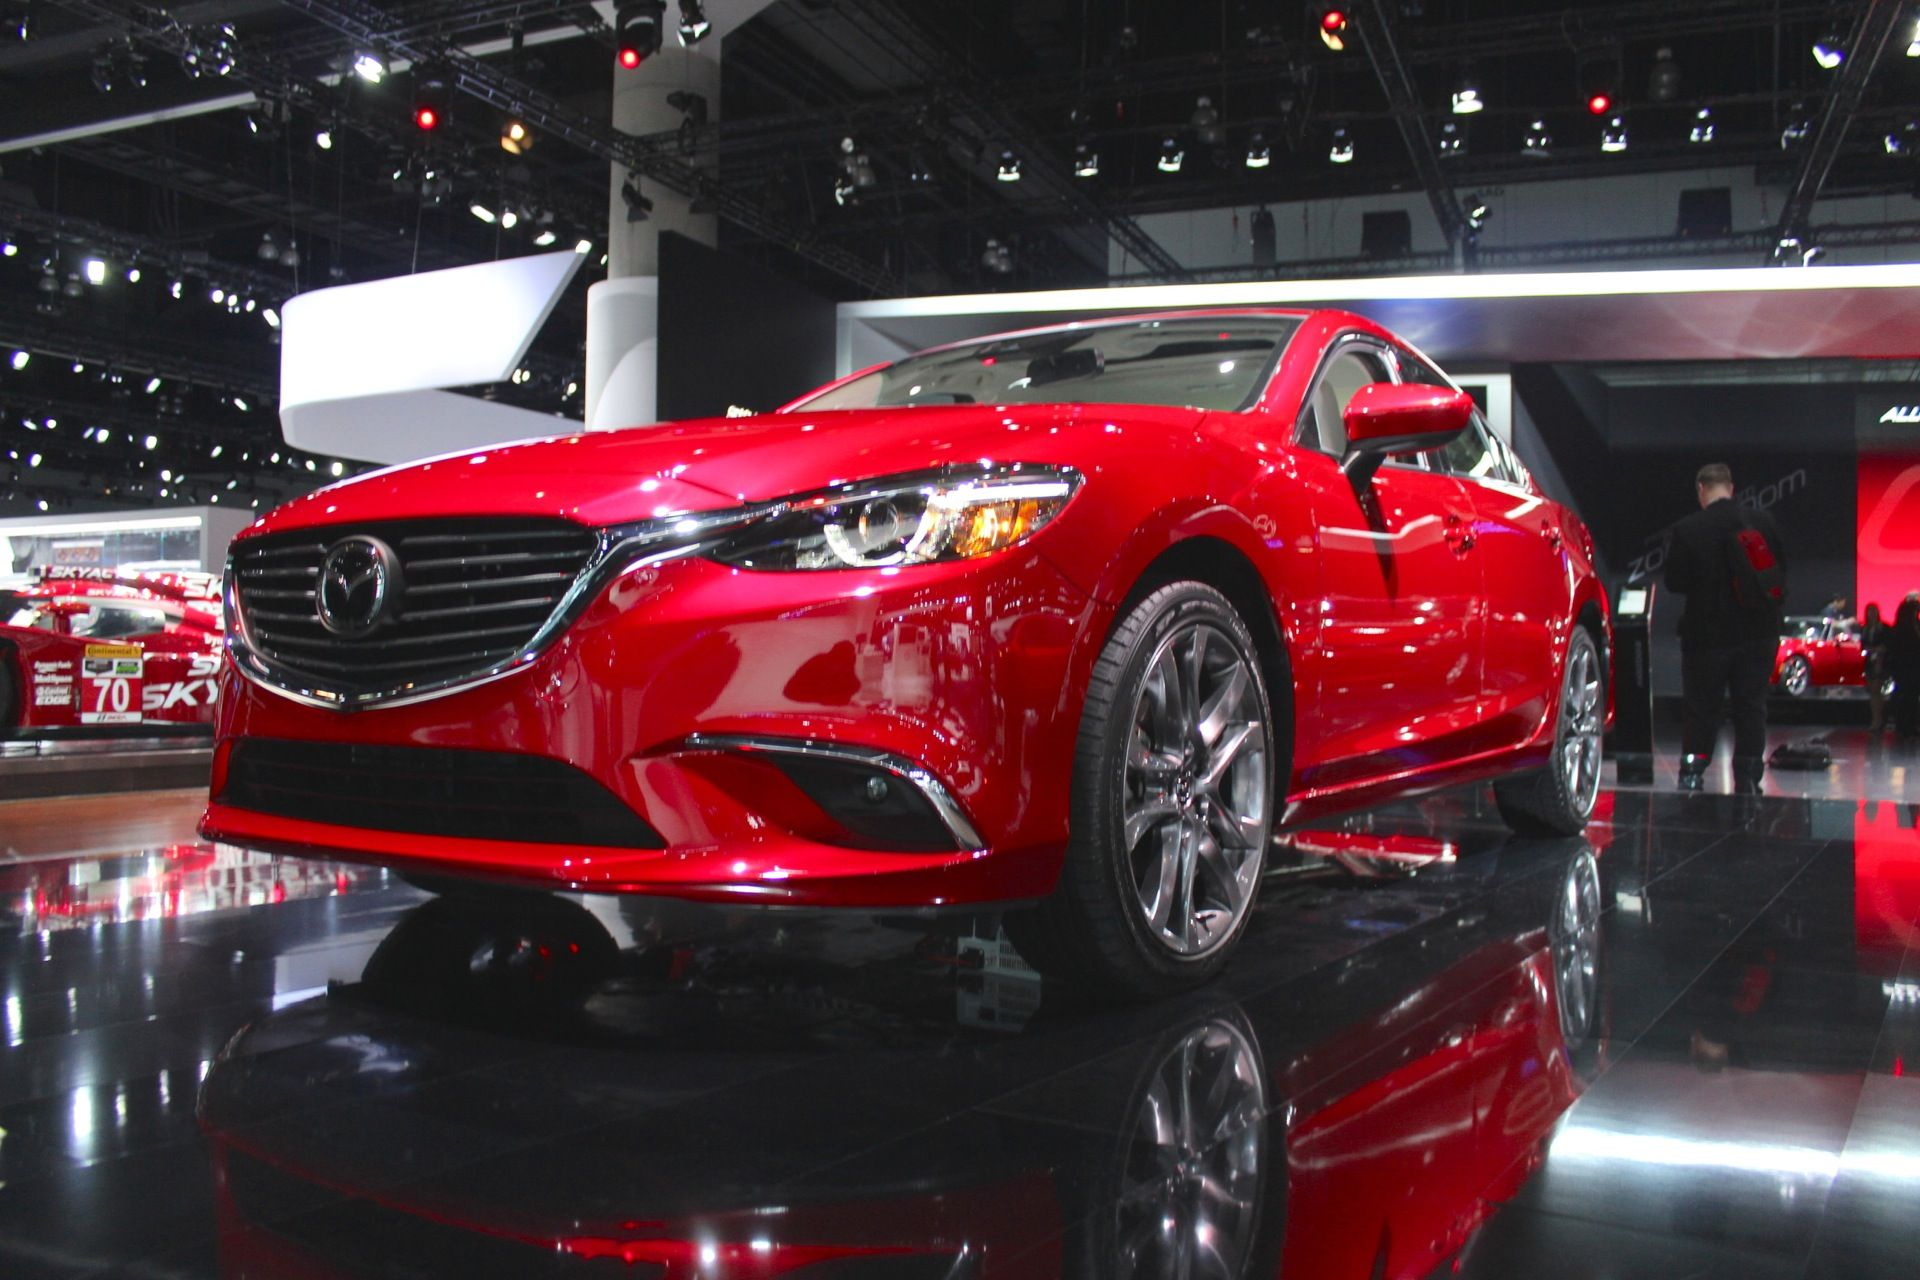 2016 Mazda 6 Release Pictures #2016, #6, #Mazda, #Pictures, #Release